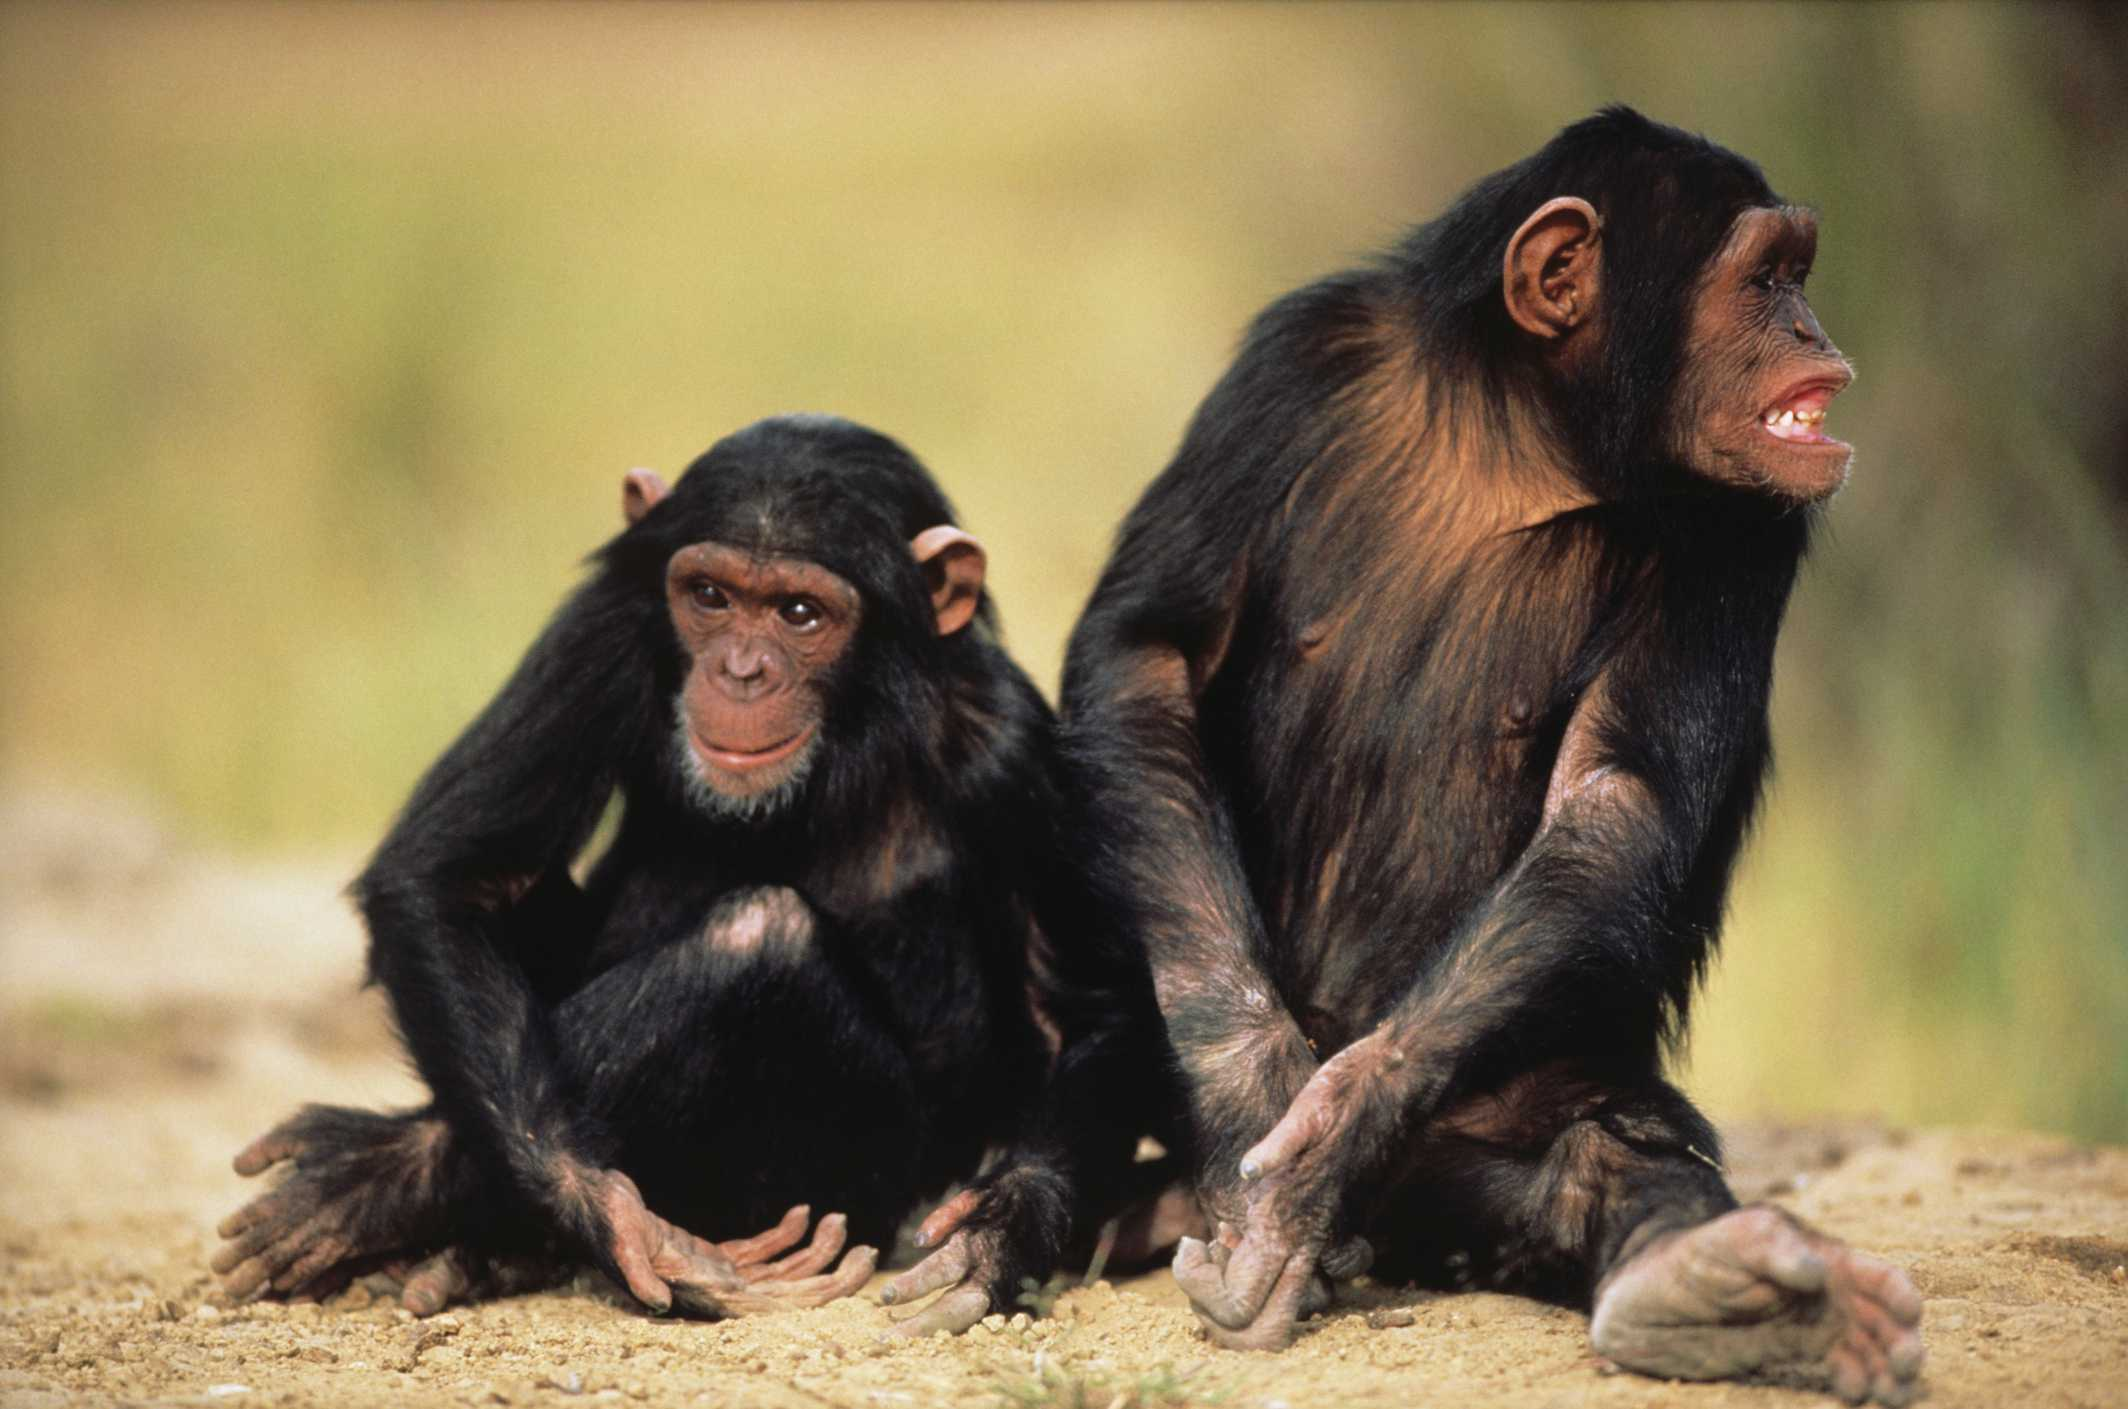 Two chimpanzees sitting next to one another